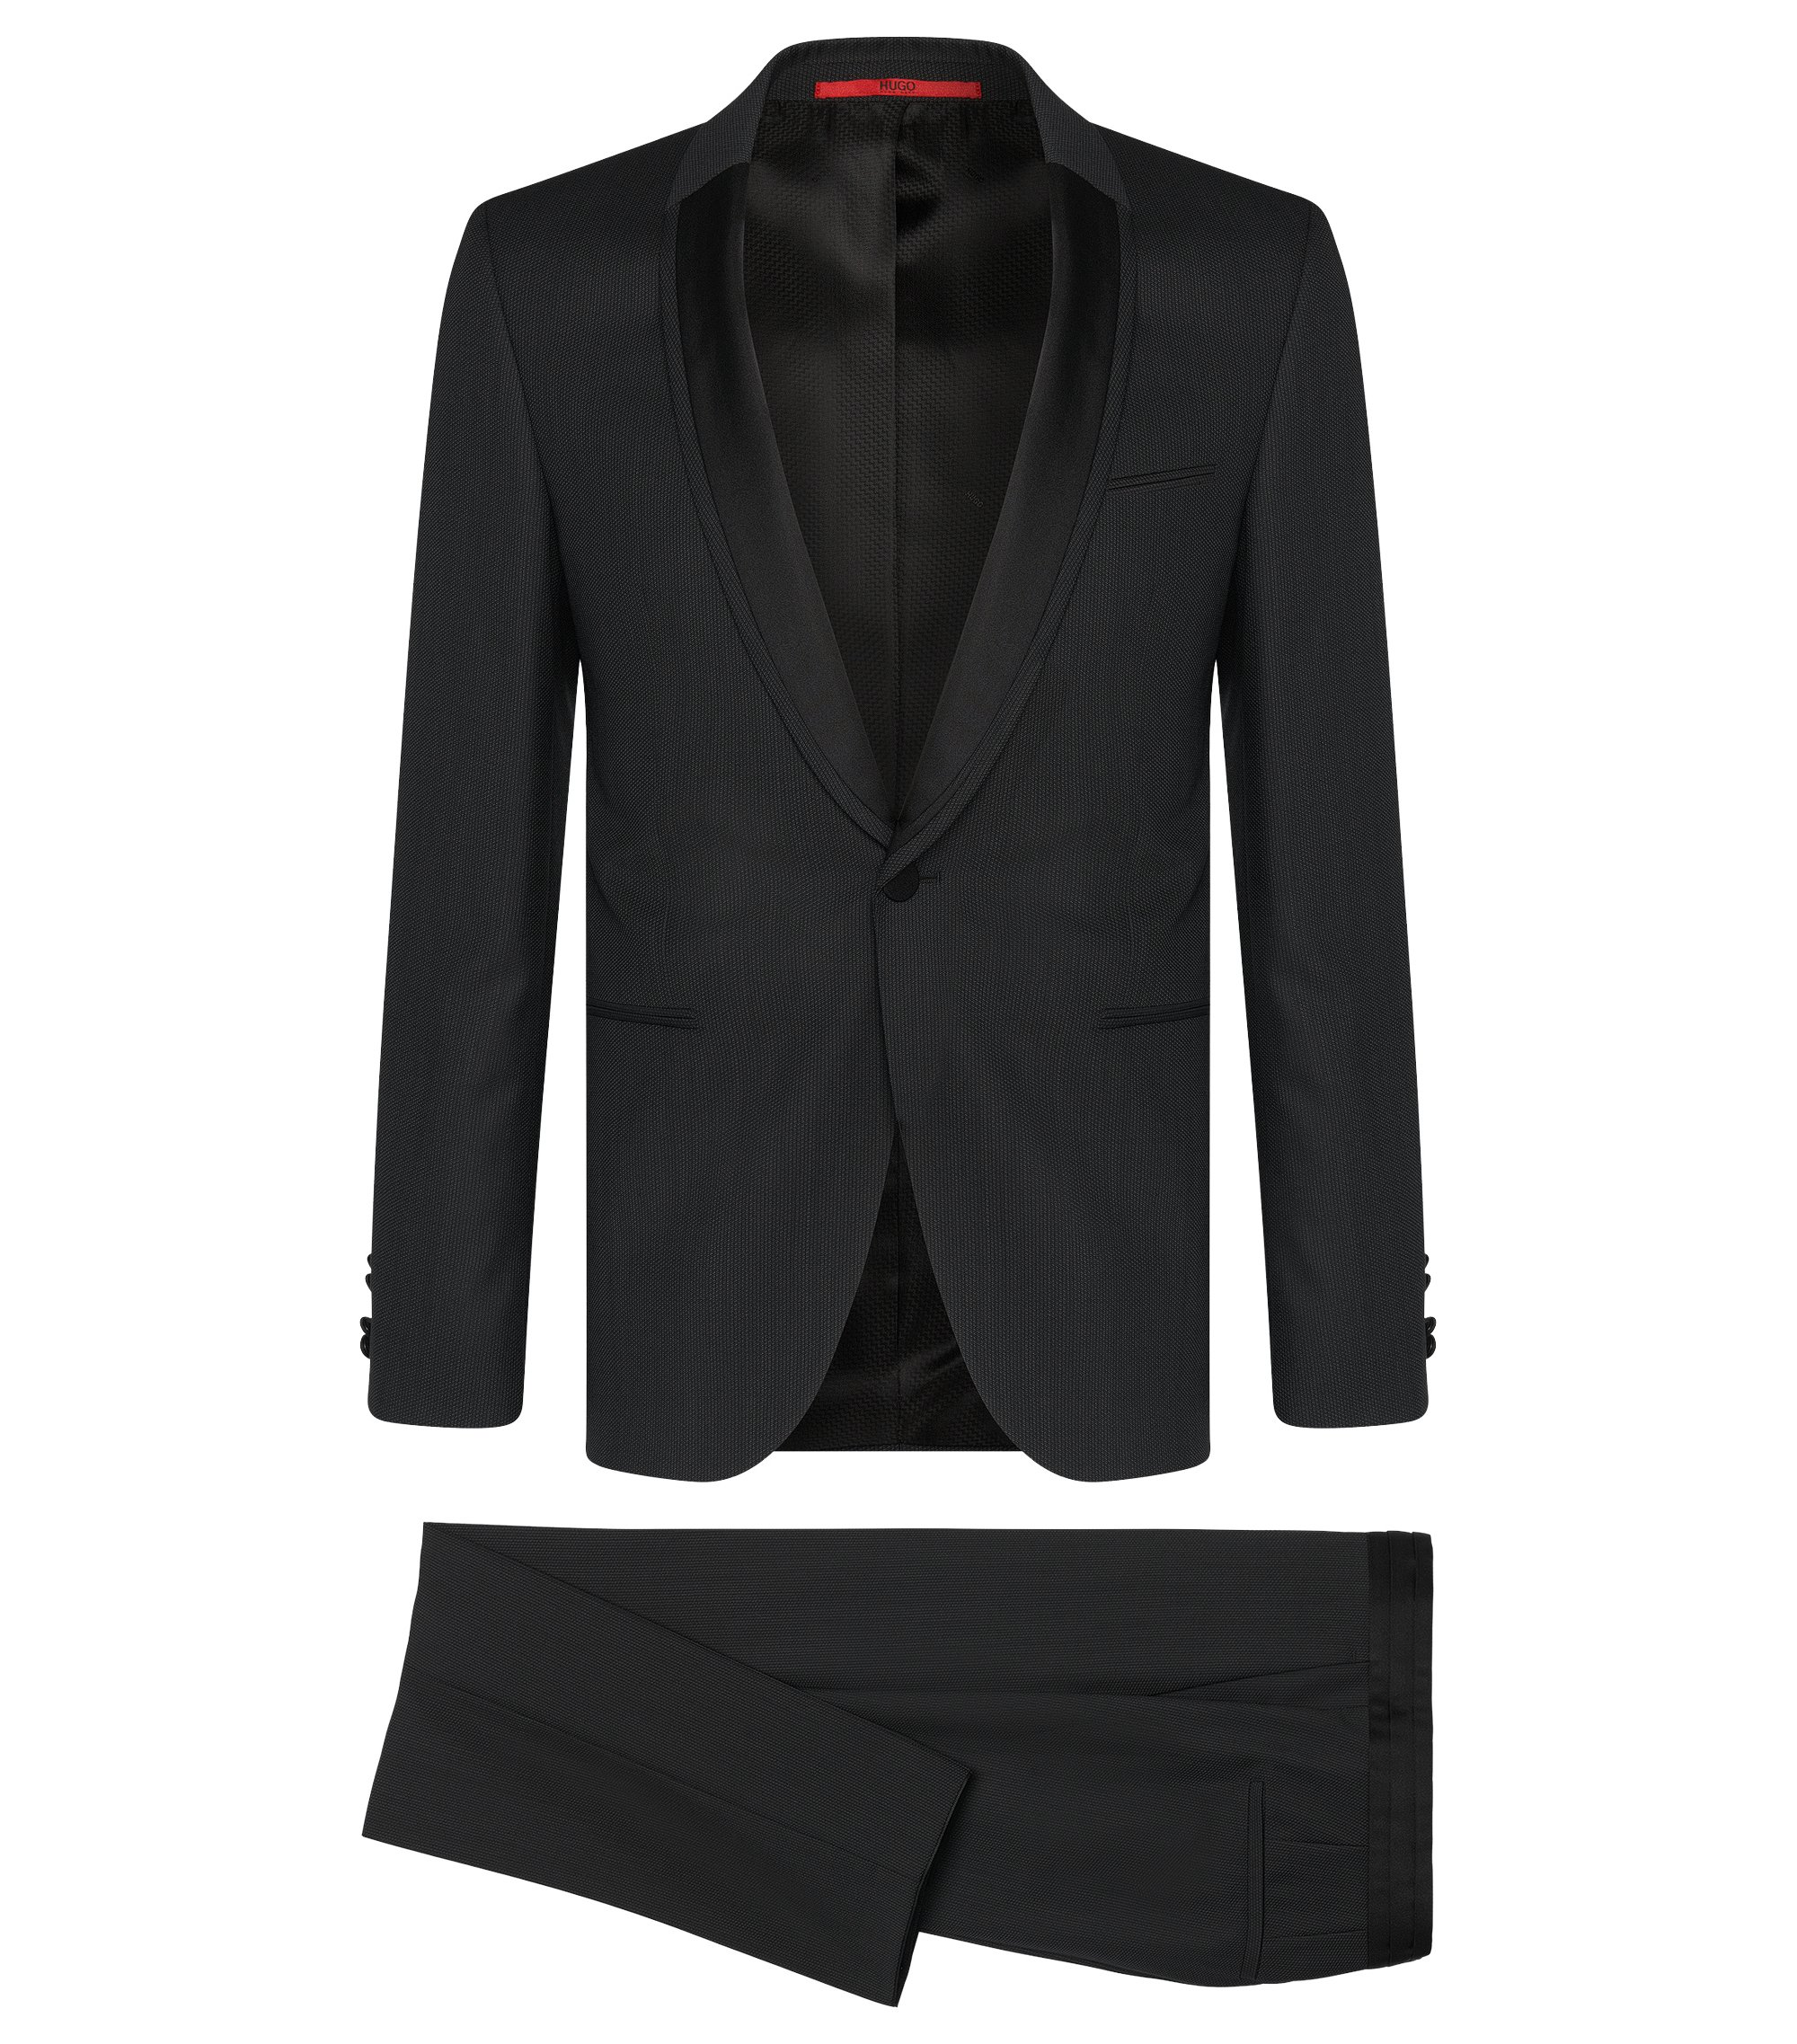 Super 110 Virgin Wool Tuxedo, Extra-Slim Fit | Anros/Himans, Black